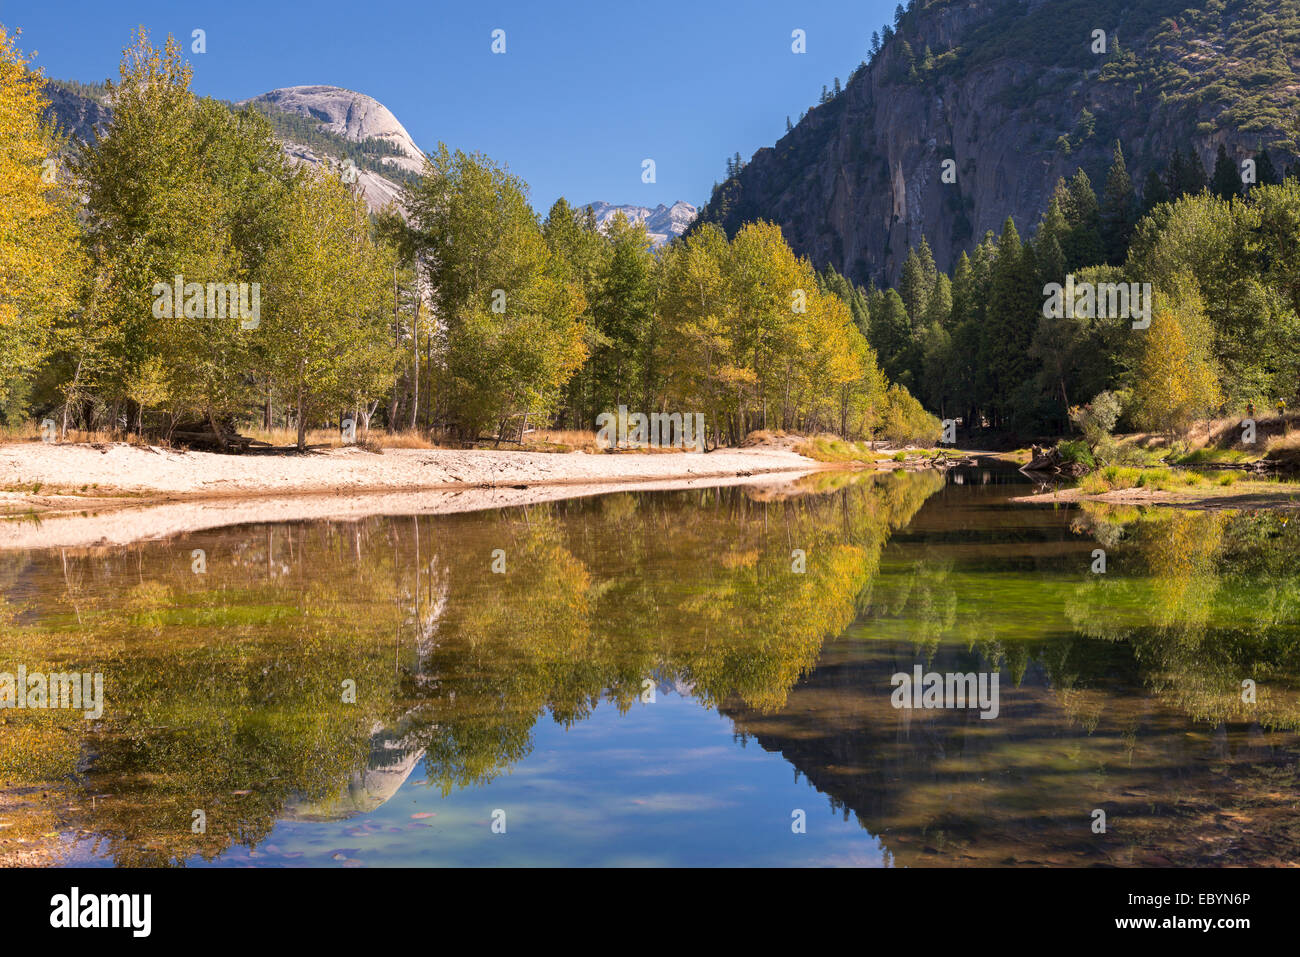 Autumn colours along the banks of the River Merced, Yosemite Valley, California, USA. Autumn (October) 2014. - Stock Image